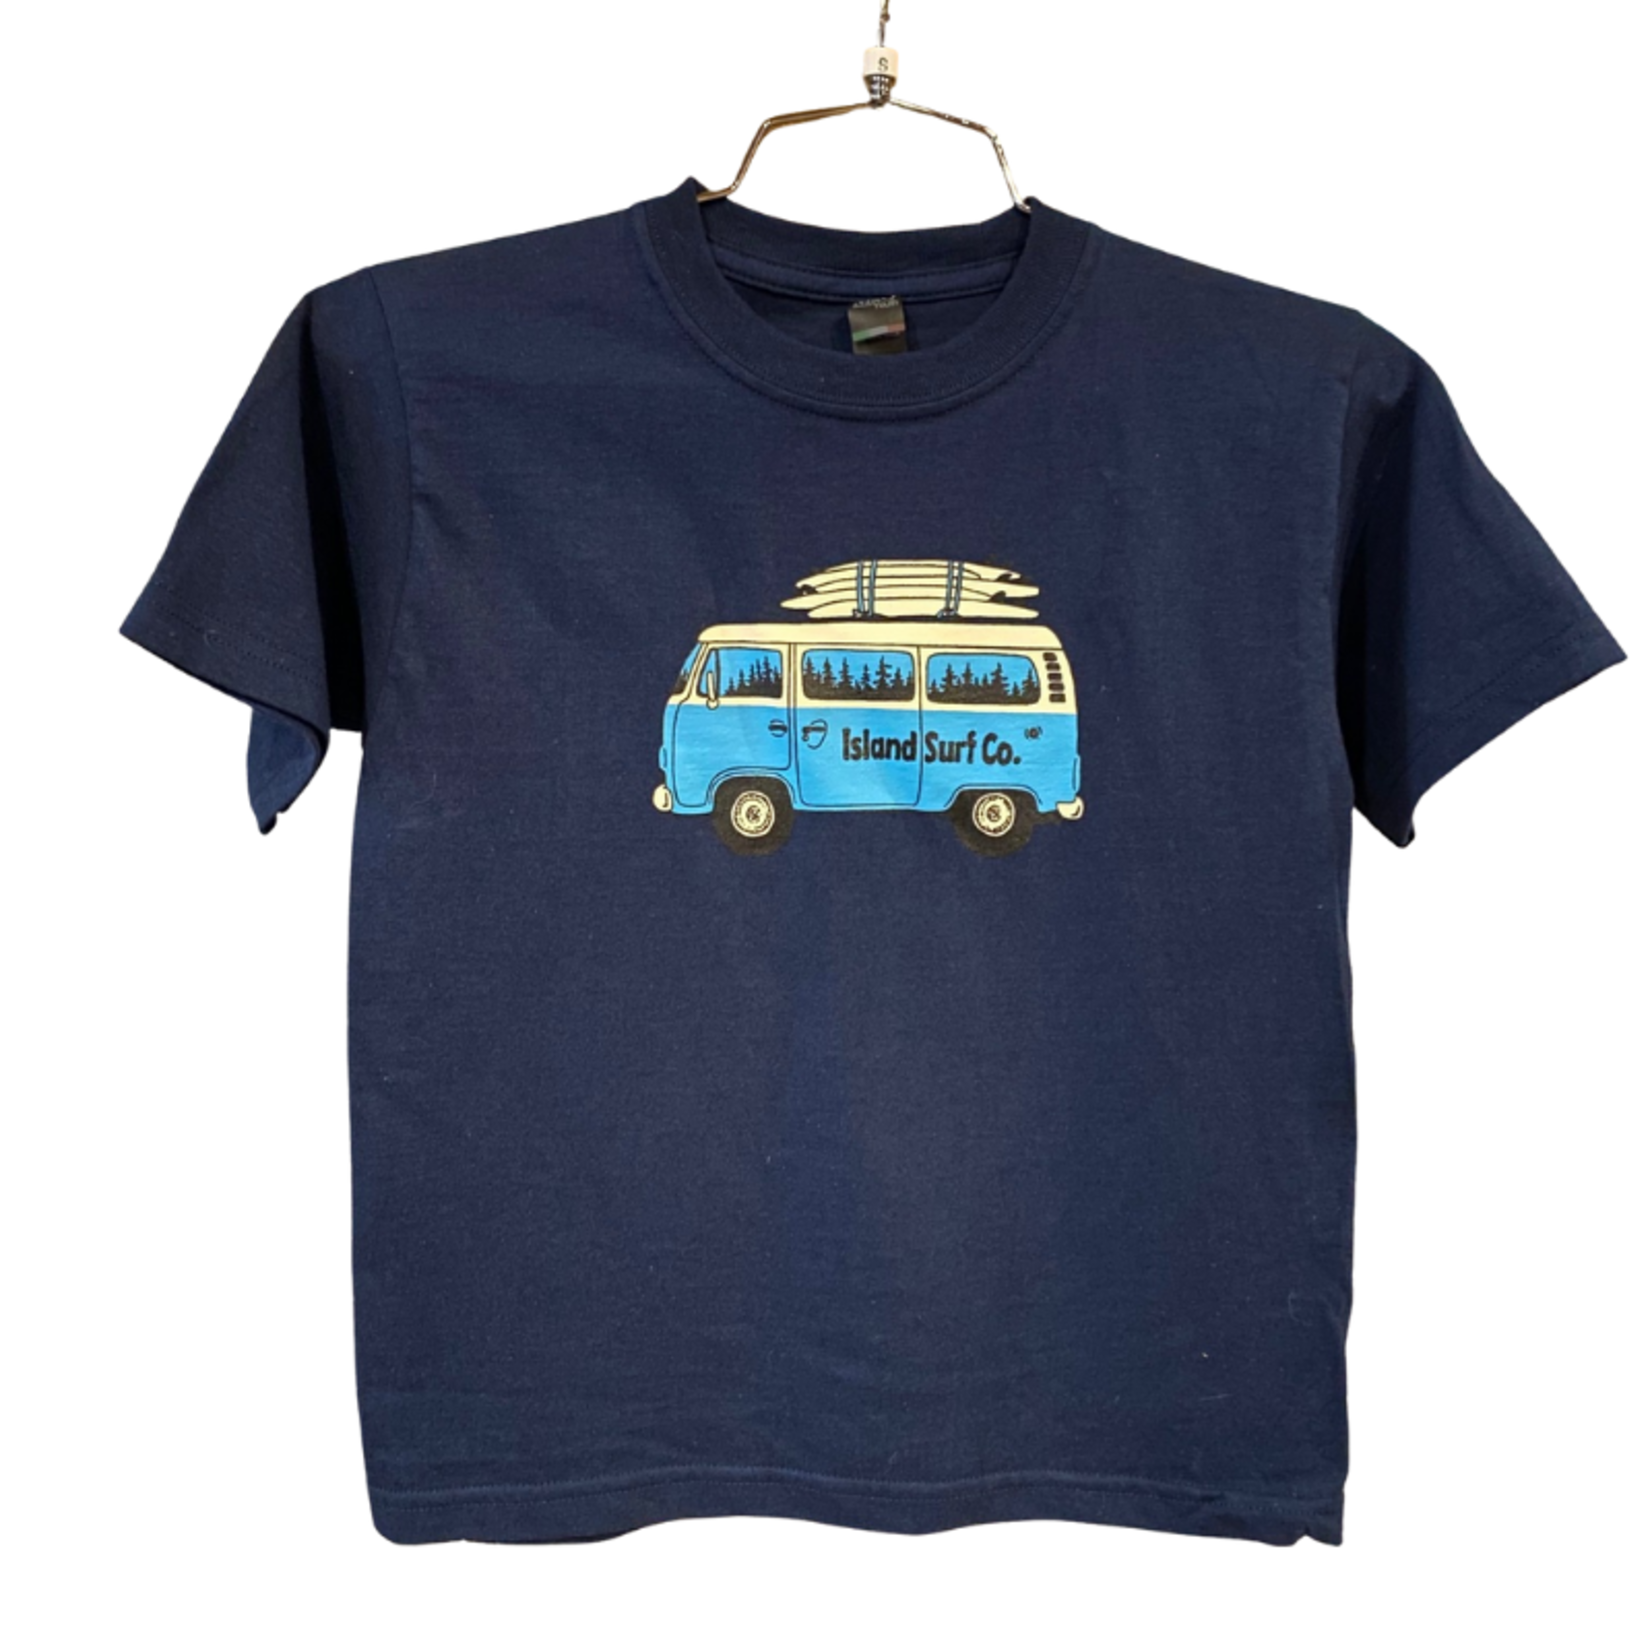 Riptide Youth Volksie T-Shirt